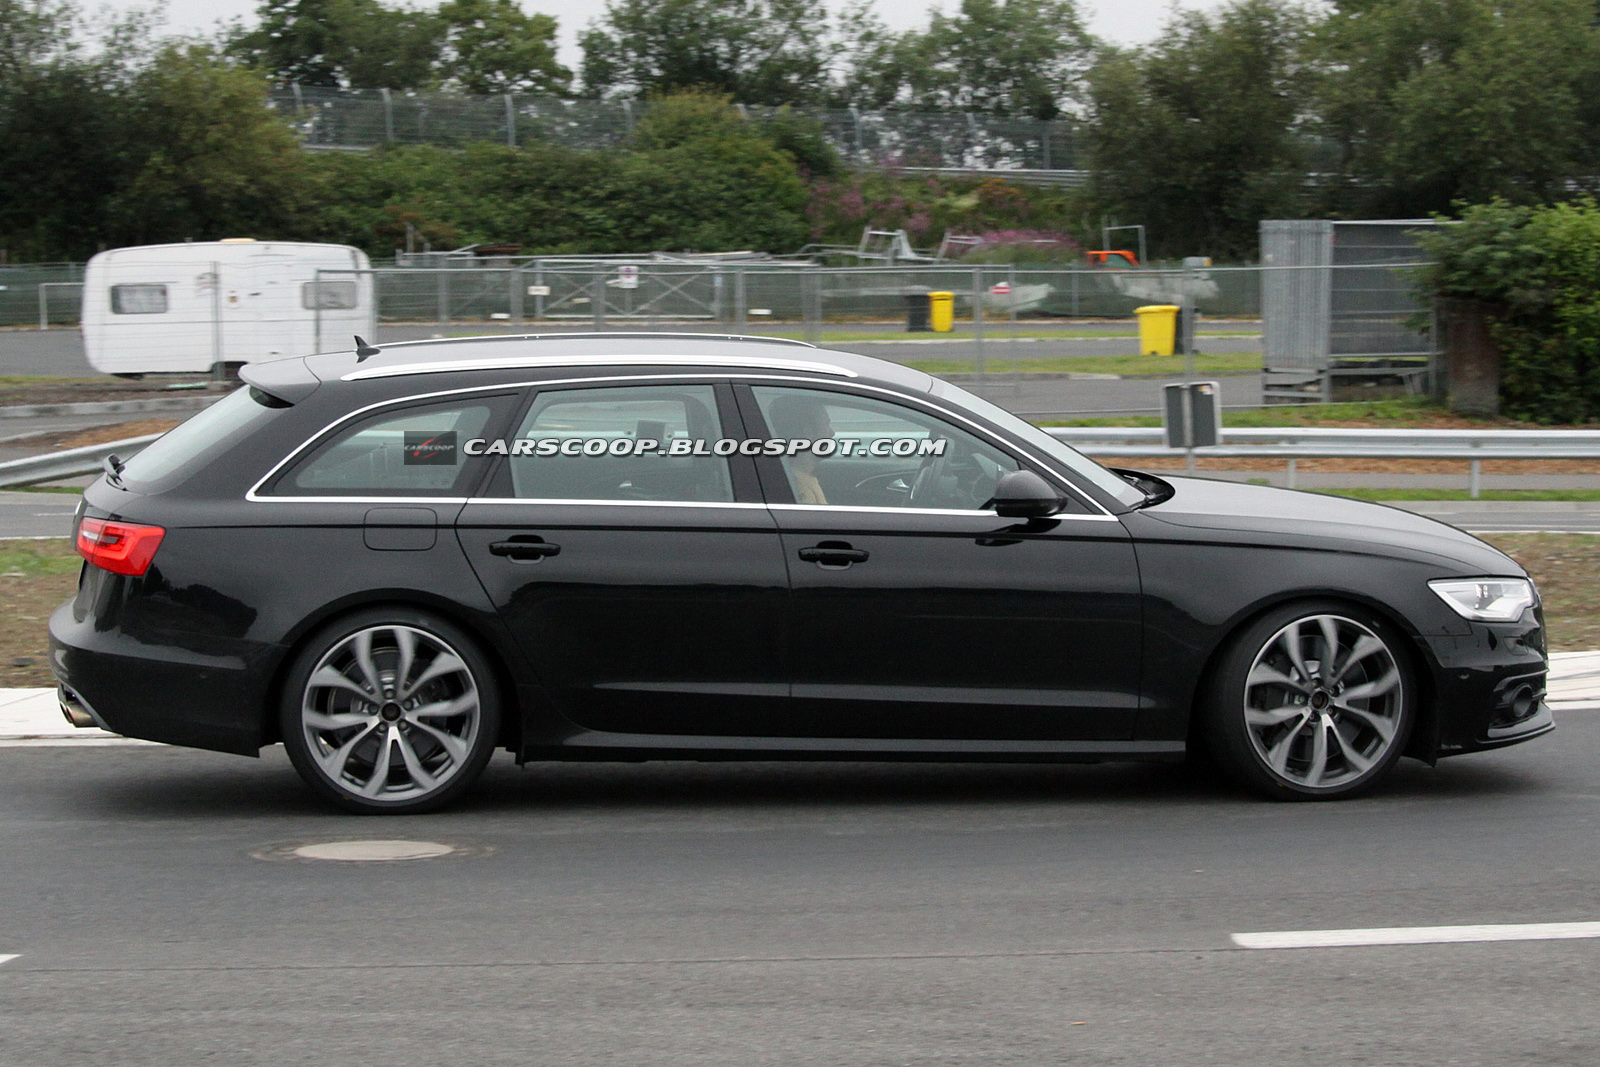 2012 audi s6 avant iii pictures information and specs. Black Bedroom Furniture Sets. Home Design Ideas